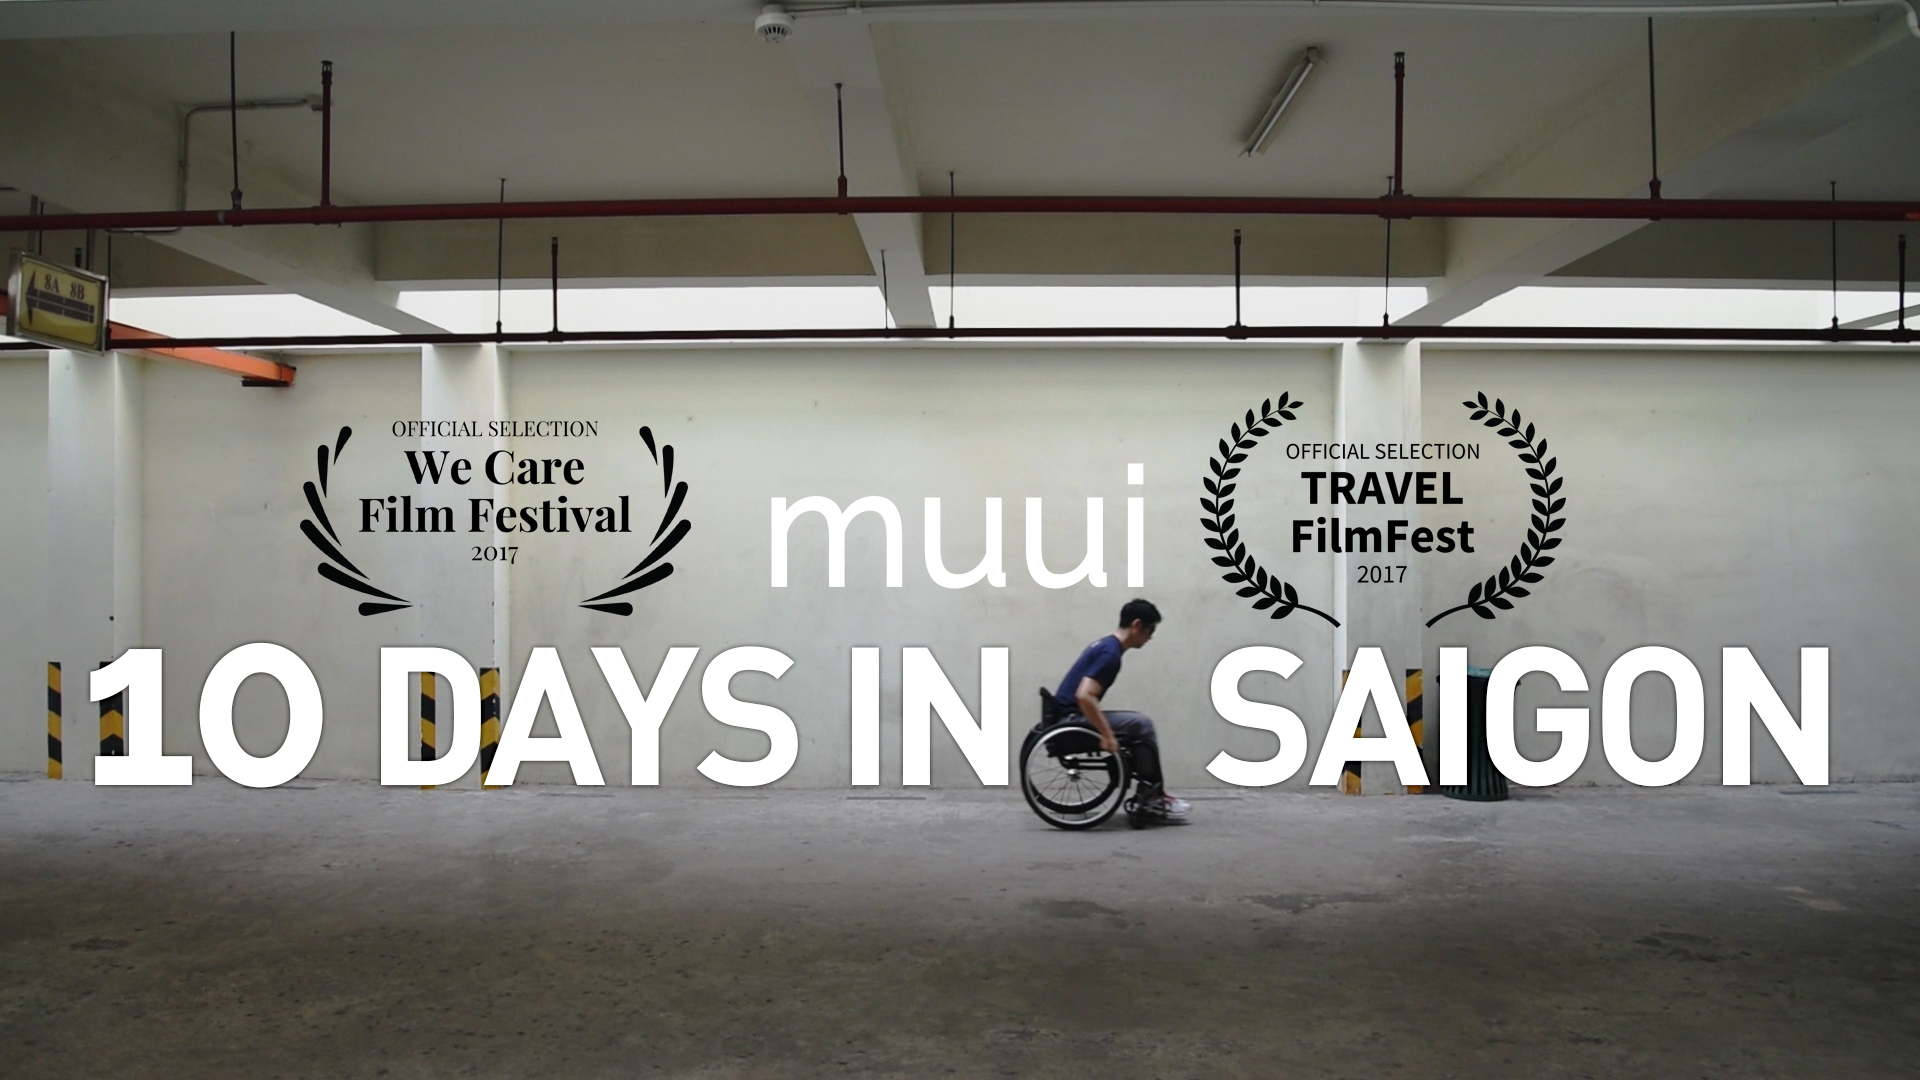 Promotional image for the  10 Days in Saigon  webseries displaying its film festival selections.